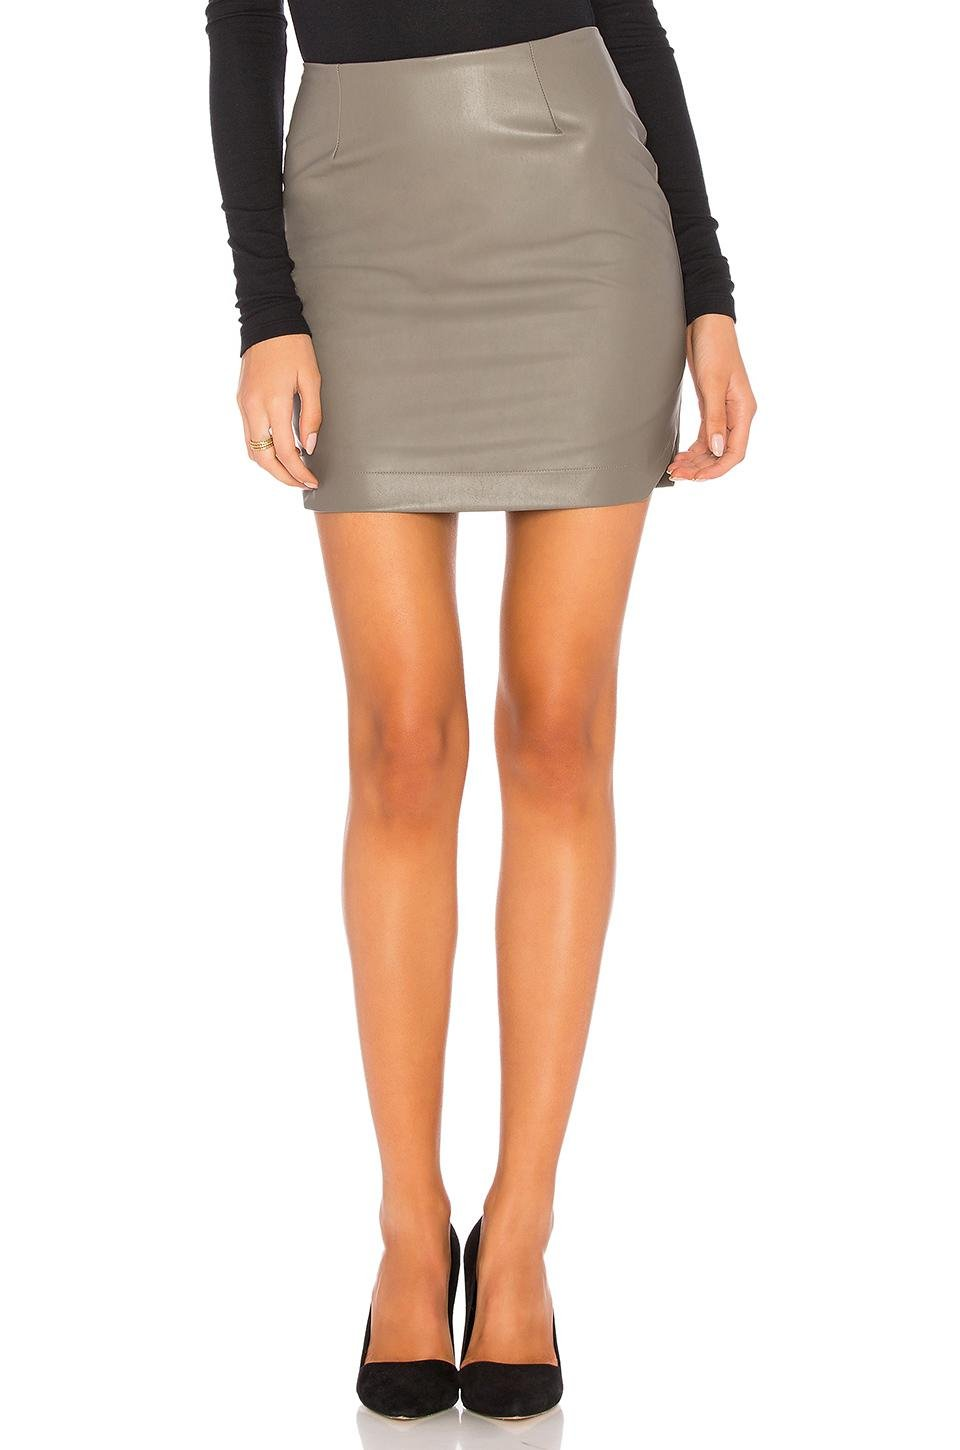 SKIRTS - Mini skirts Emma & Gaia Outlet Collections Discount Deals 601Ehh